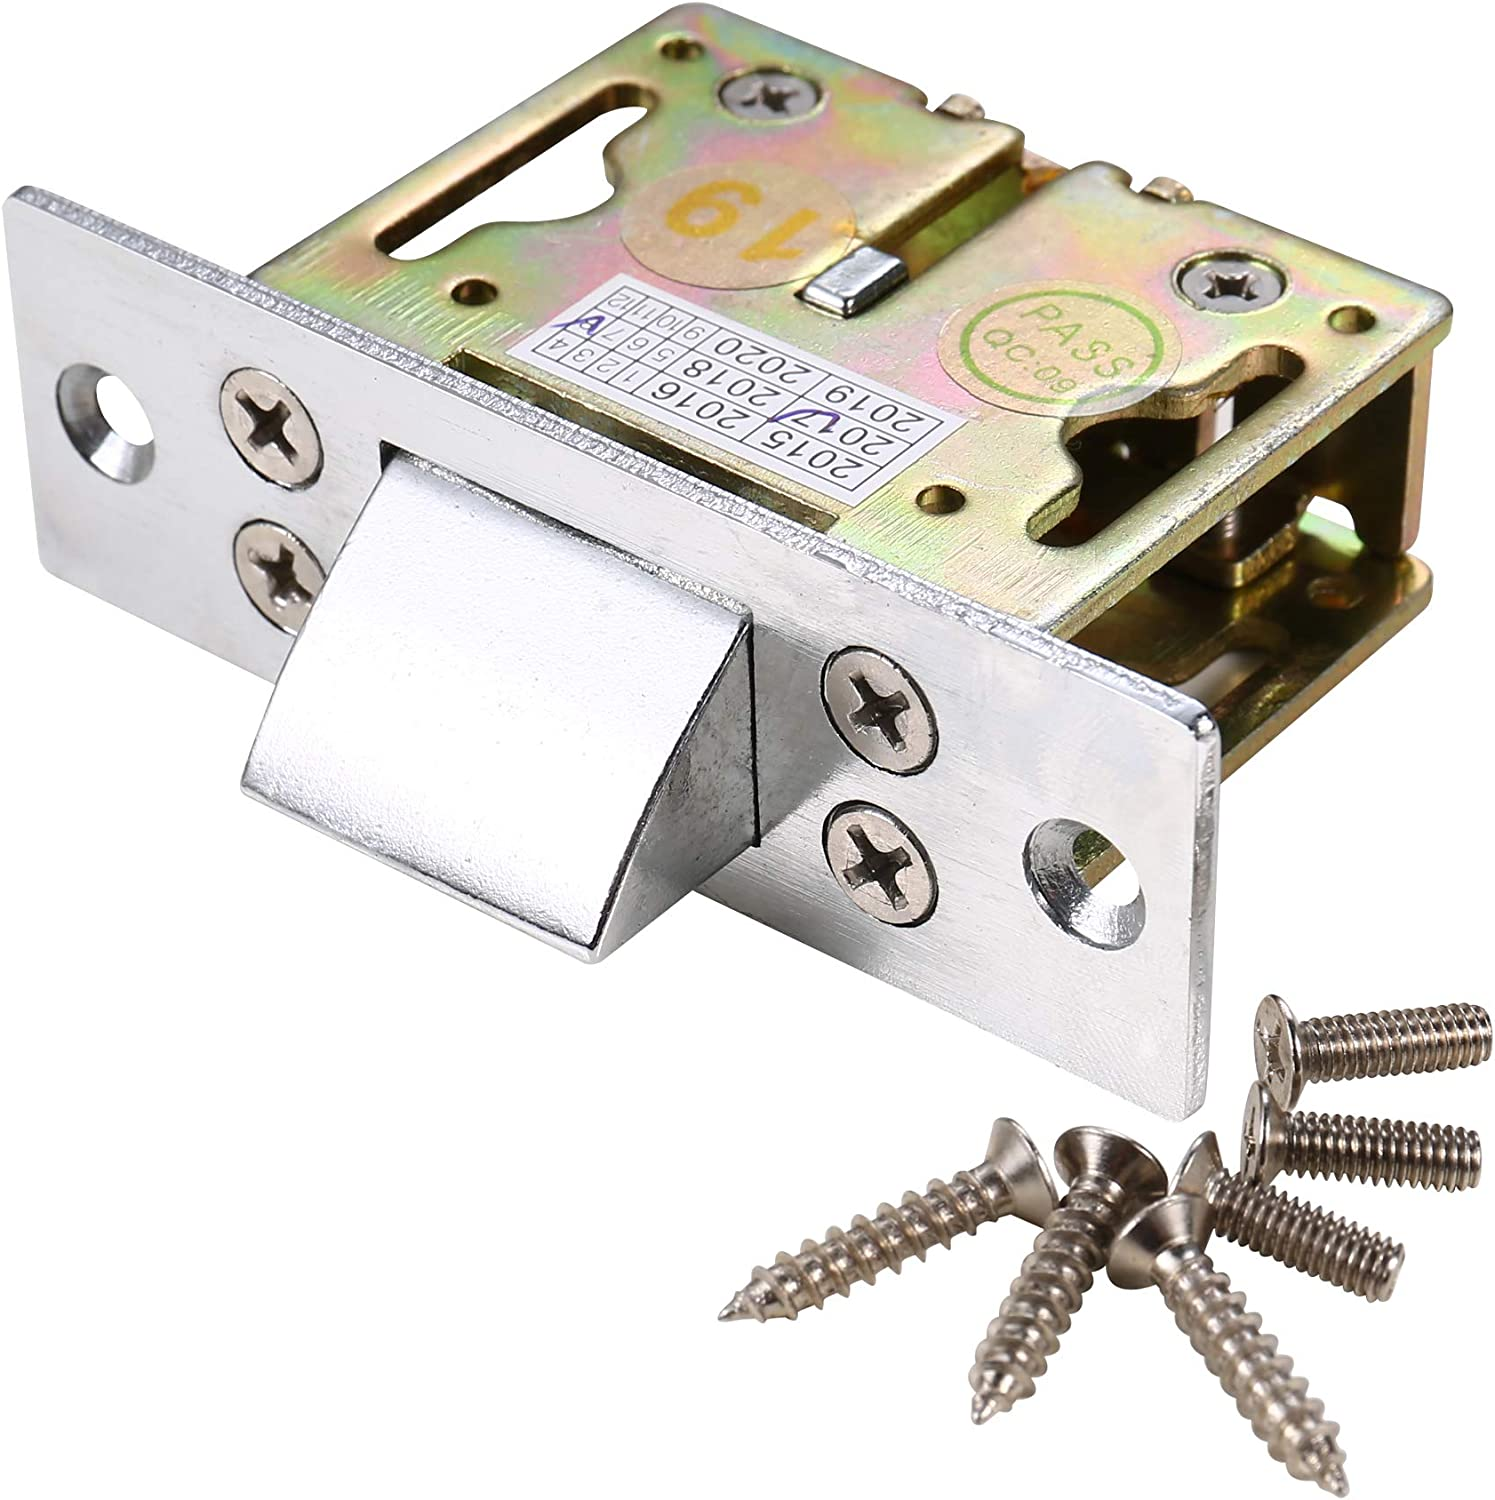 Mechanical Lock 2204lb Holding Force Compatiable With Electric Strike Gate Latch - -